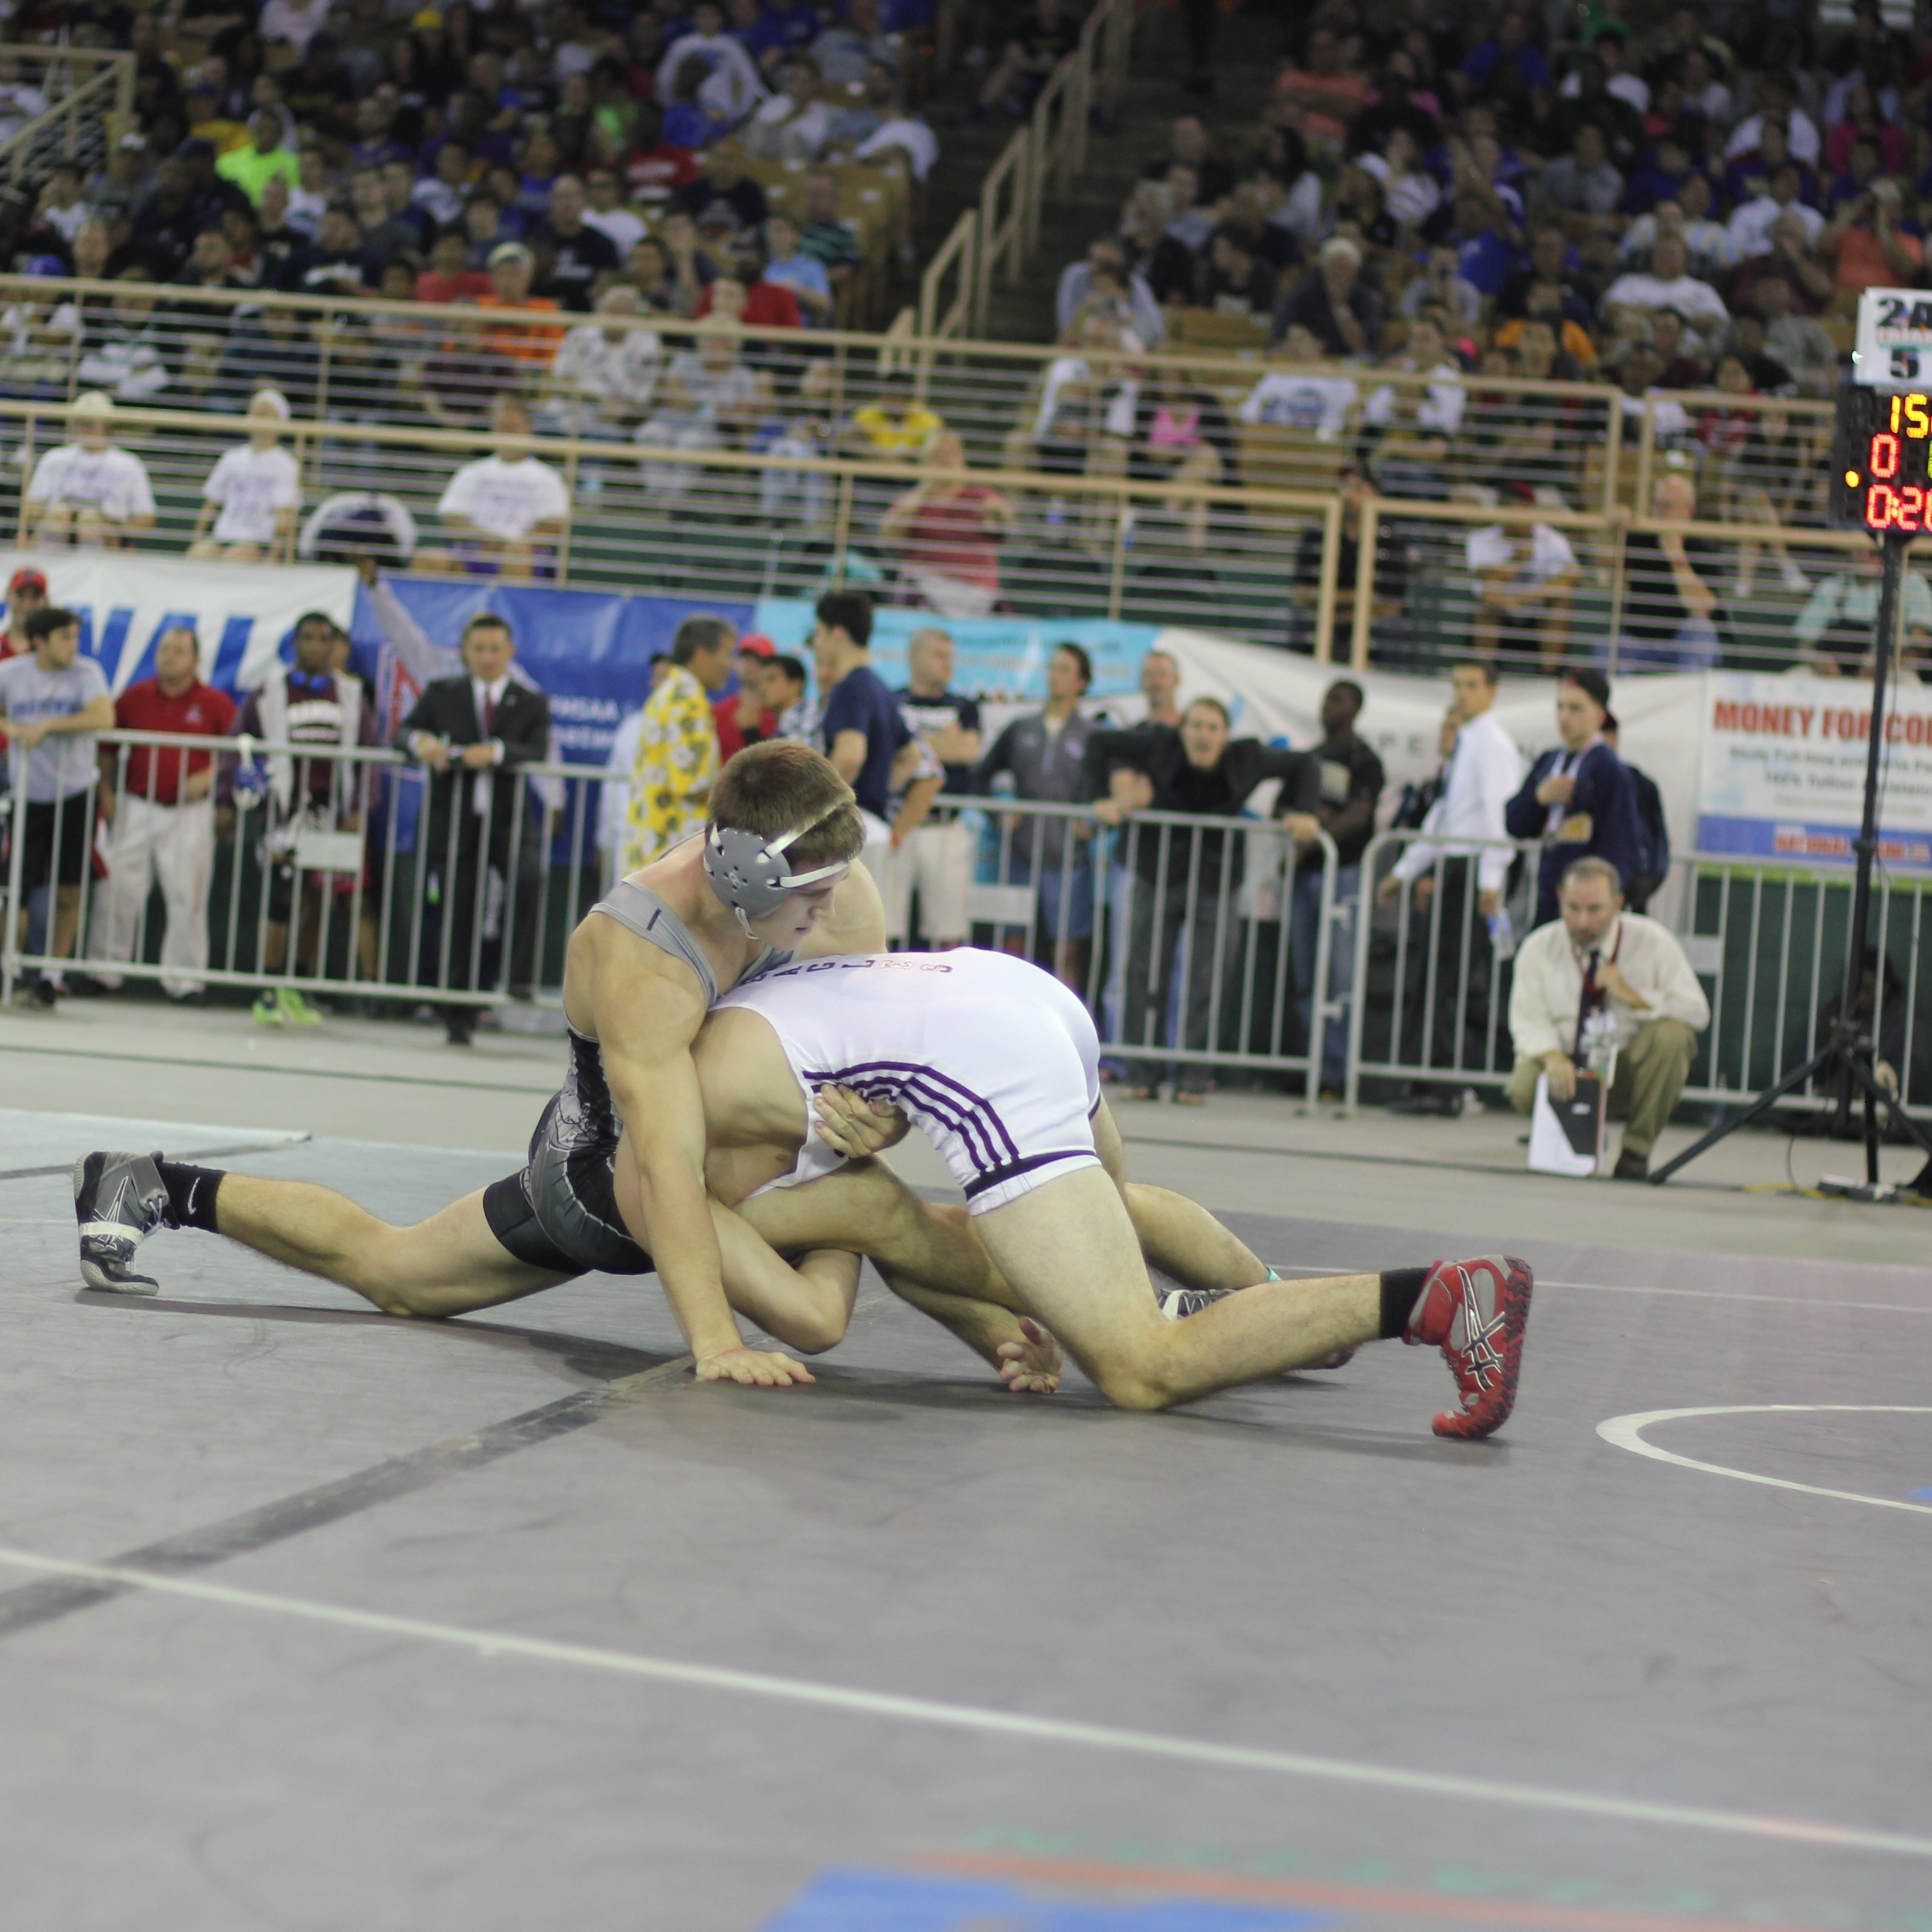 Joyce downs Williams 7-0 to win the 2015 2A 152 lb. title